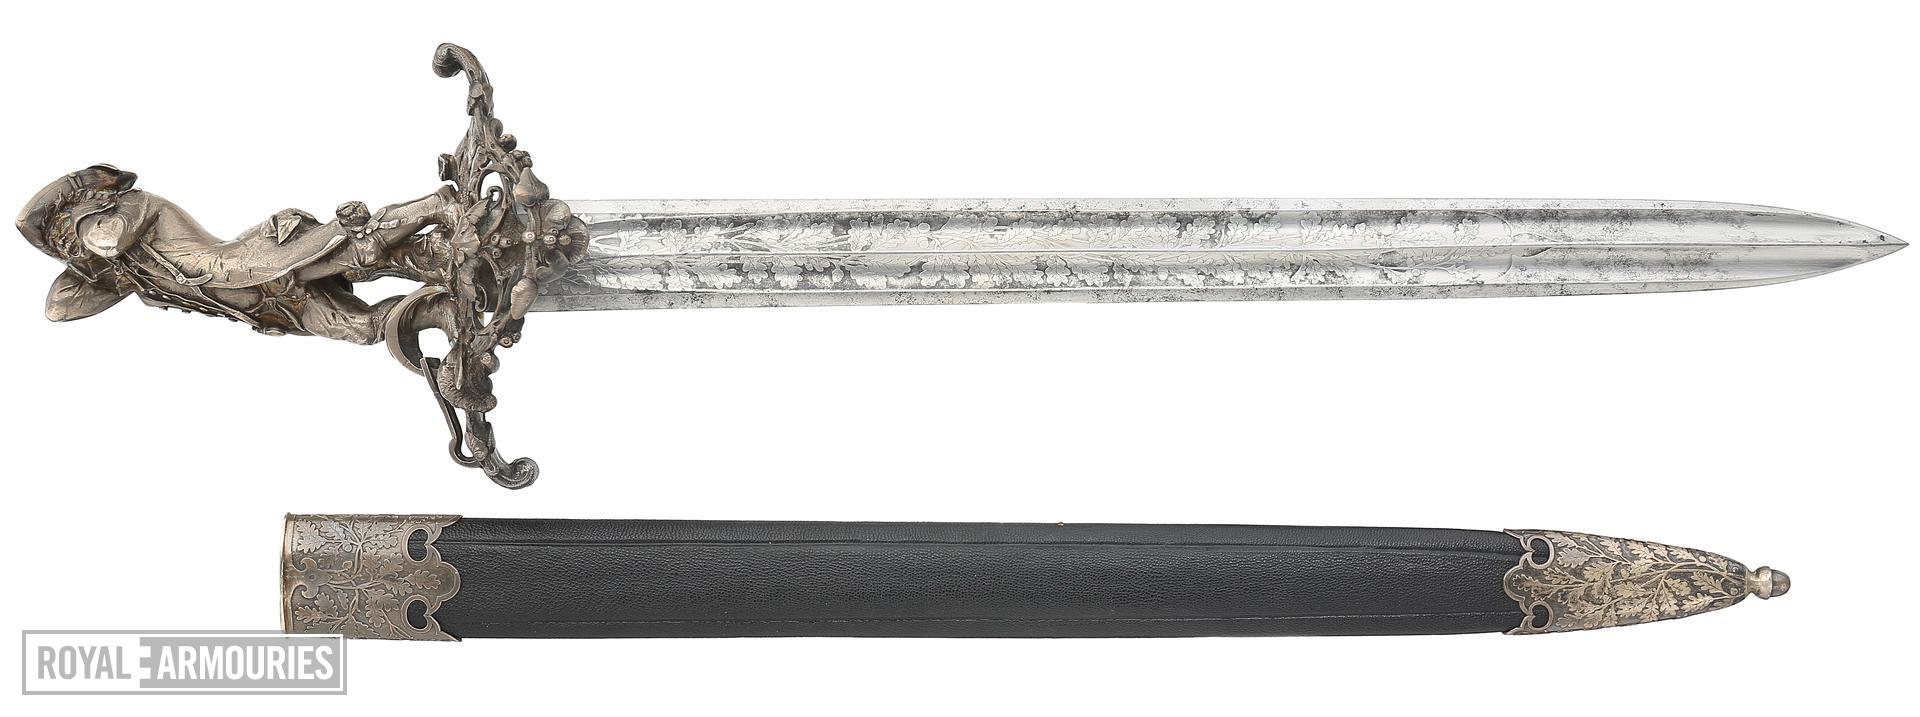 Hanger and scabbard, with hilt by Jules Wipse, marked Froment-Meurice, about 1850, France (IX.5407)